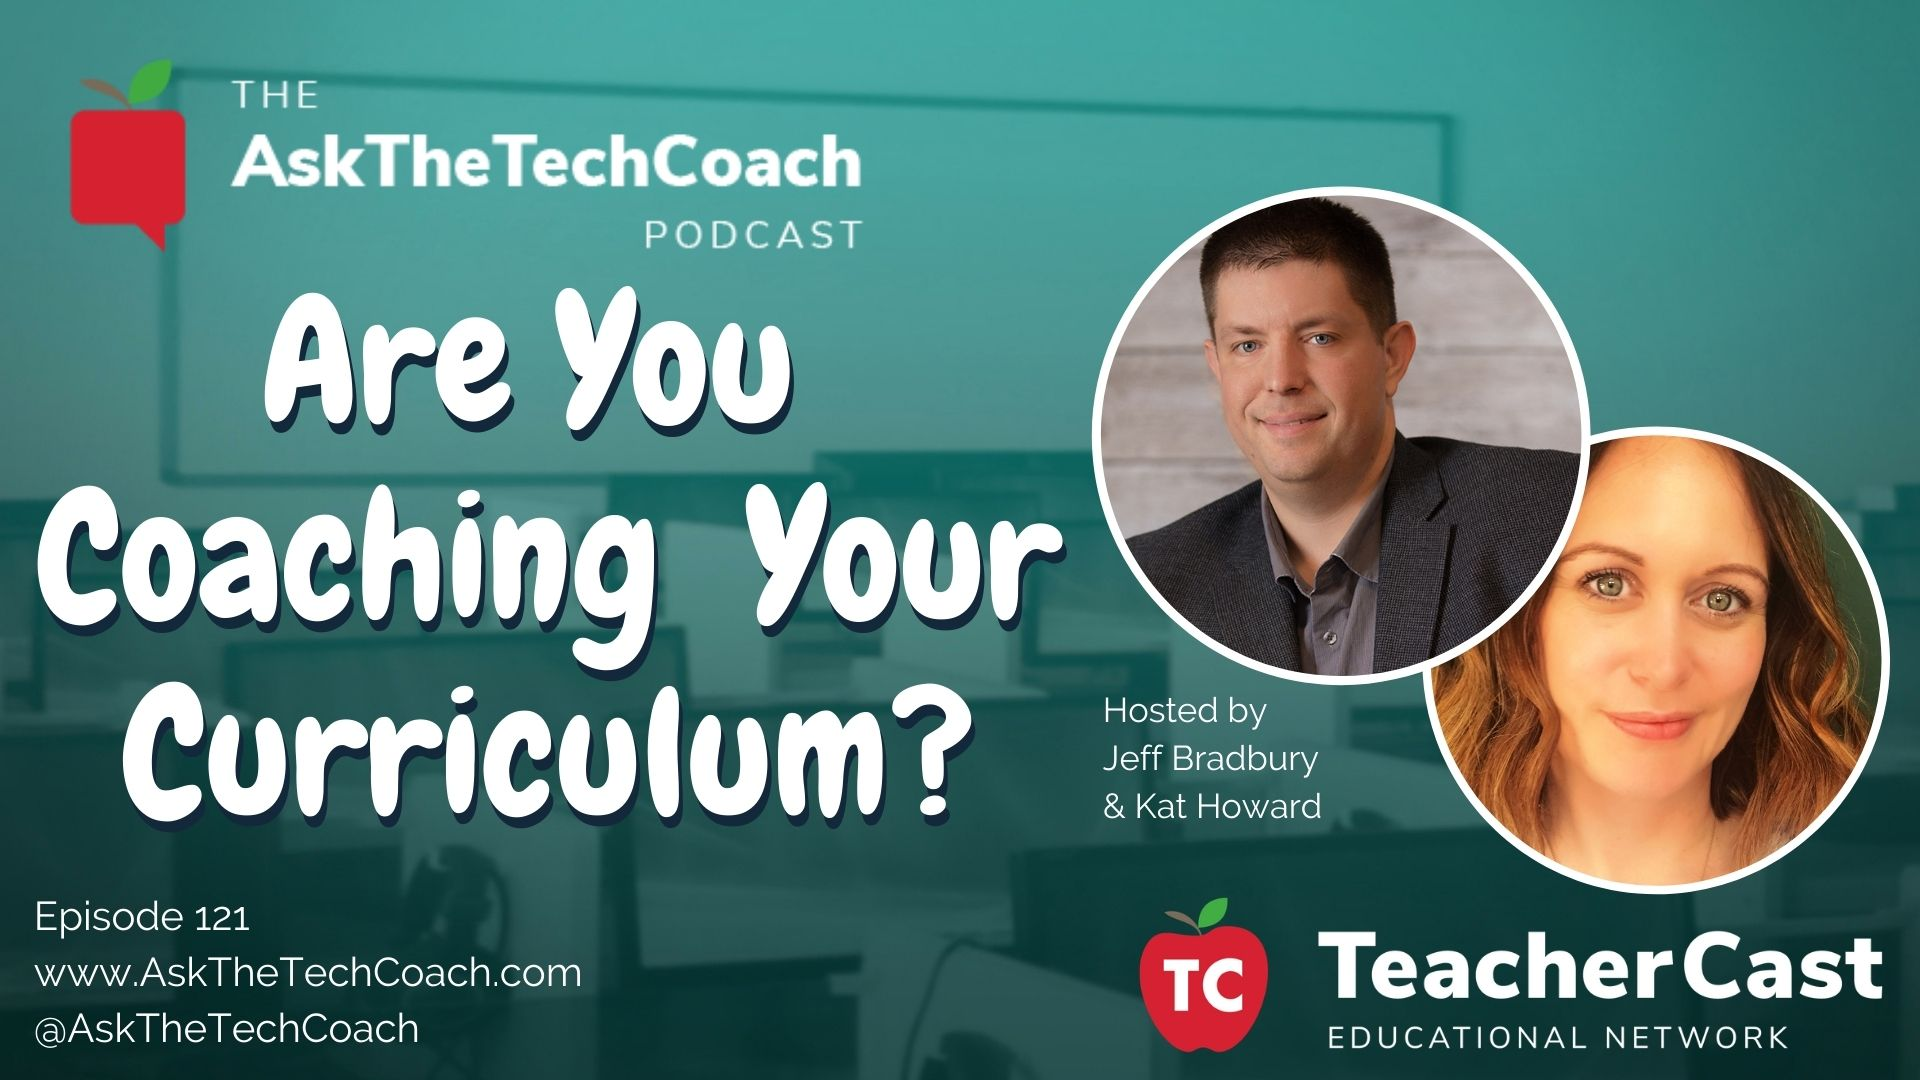 Podcast: Coaching Your Curriculum